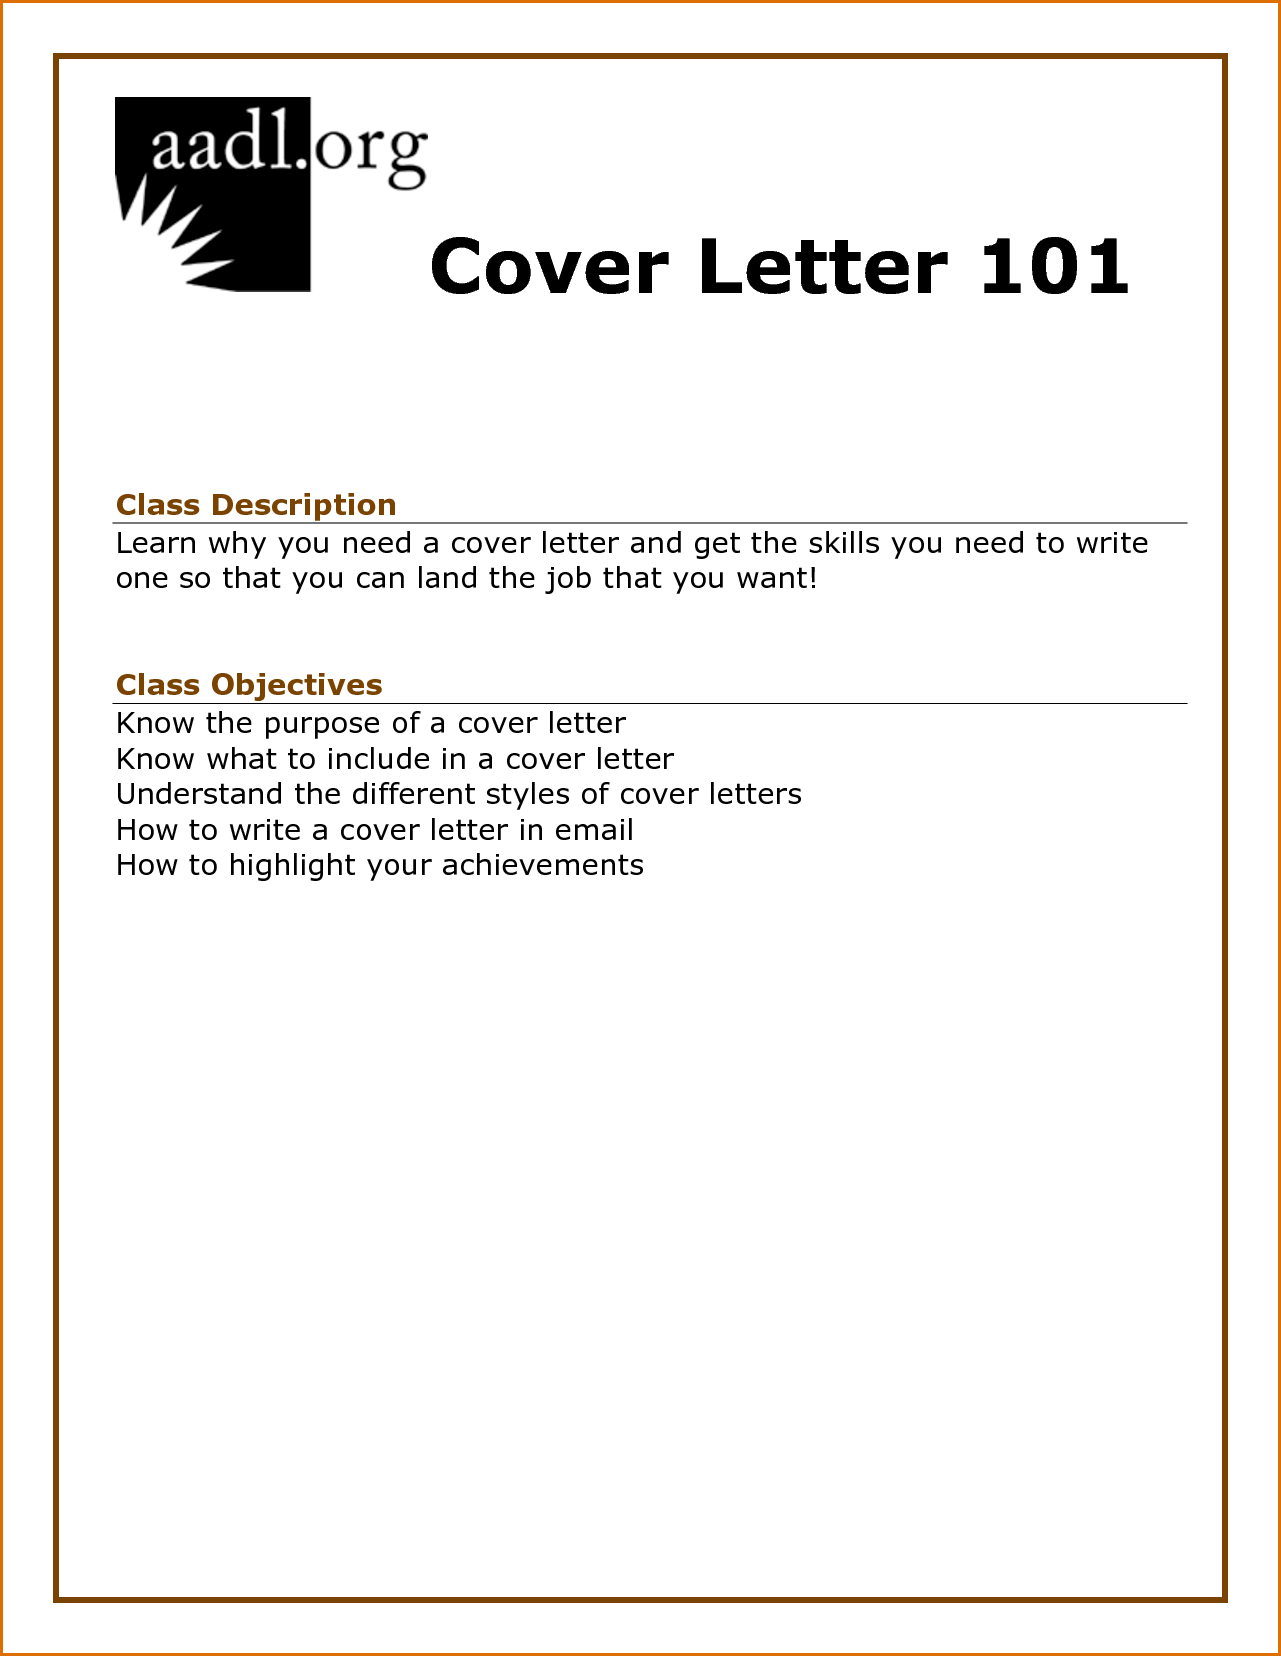 whats a cover letter for - Mara.yasamayolver.com